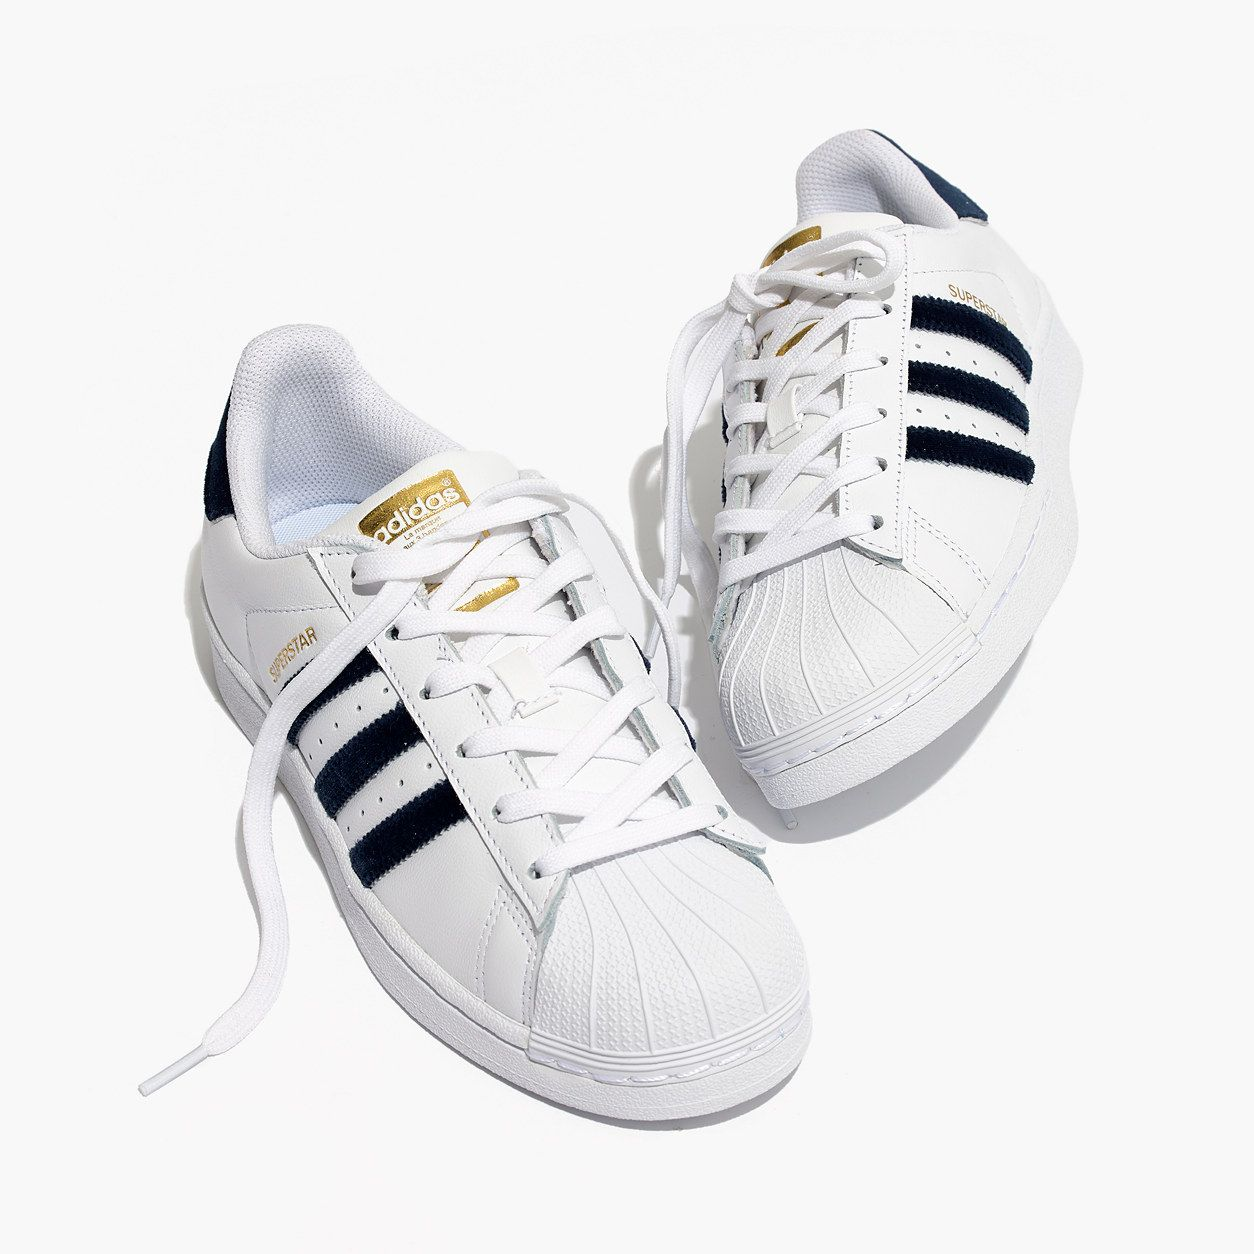 finest selection 3588f 68750 Madewell Womens Adidas Superstar Lace-Up Sneakers In Velvet